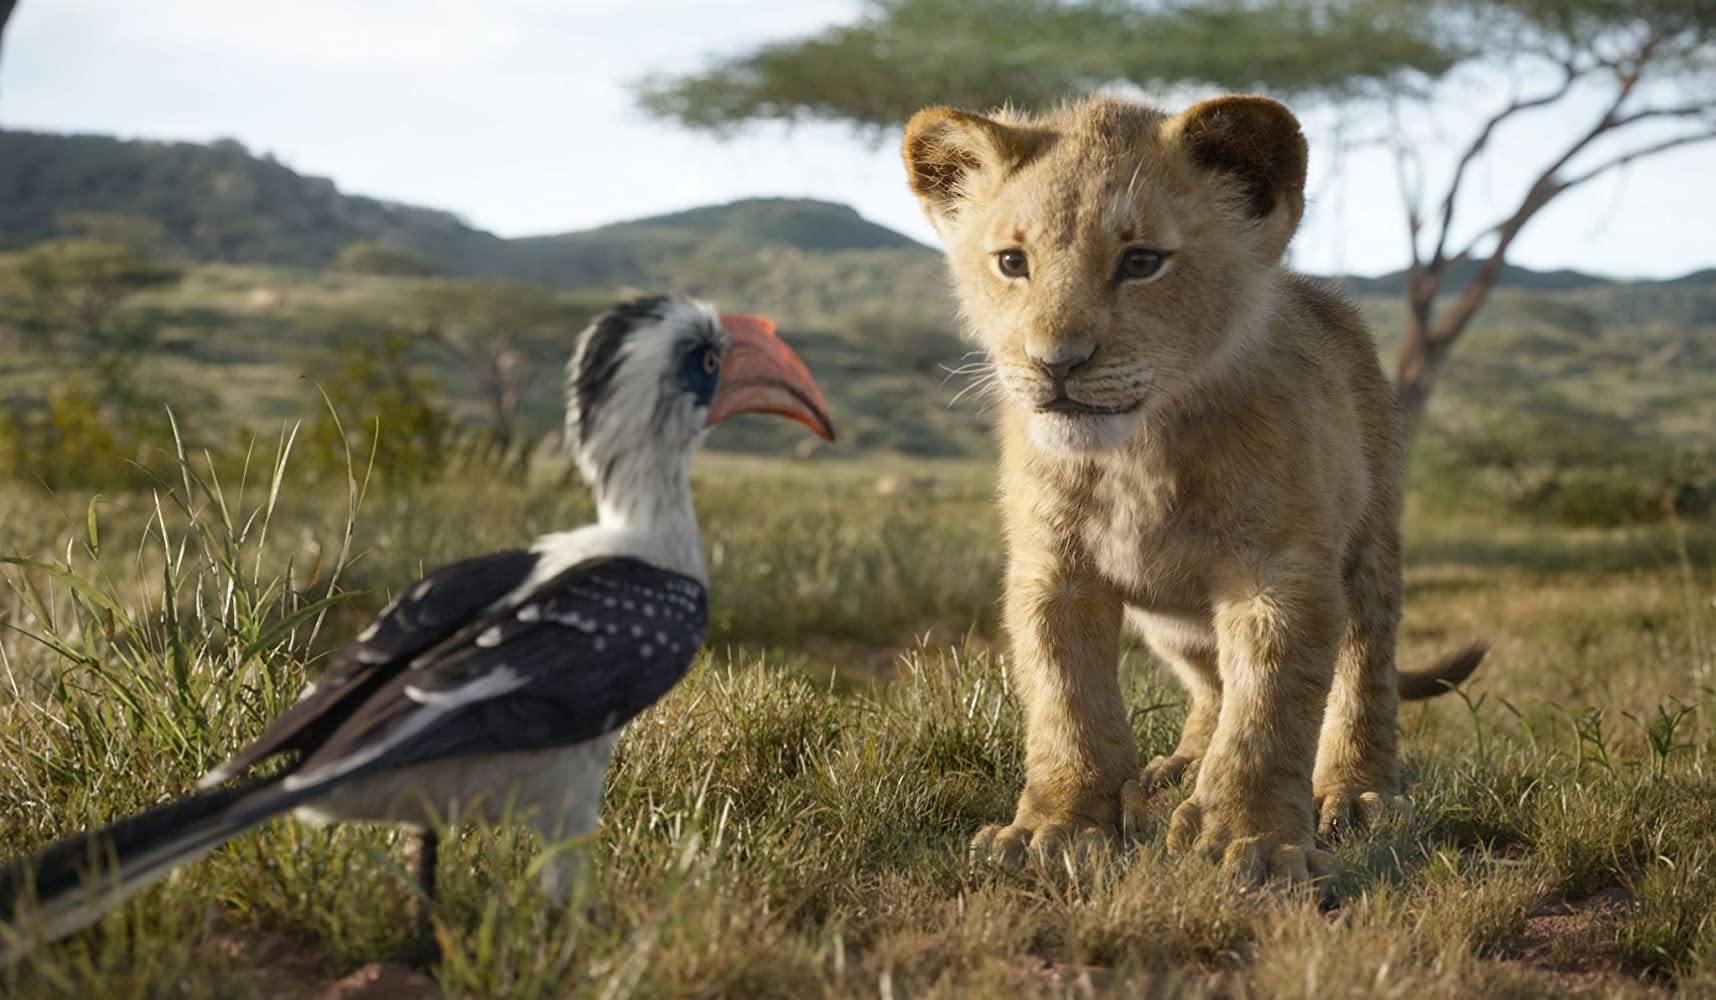 John Oliver and JD McCrary in The Lion King (2019)